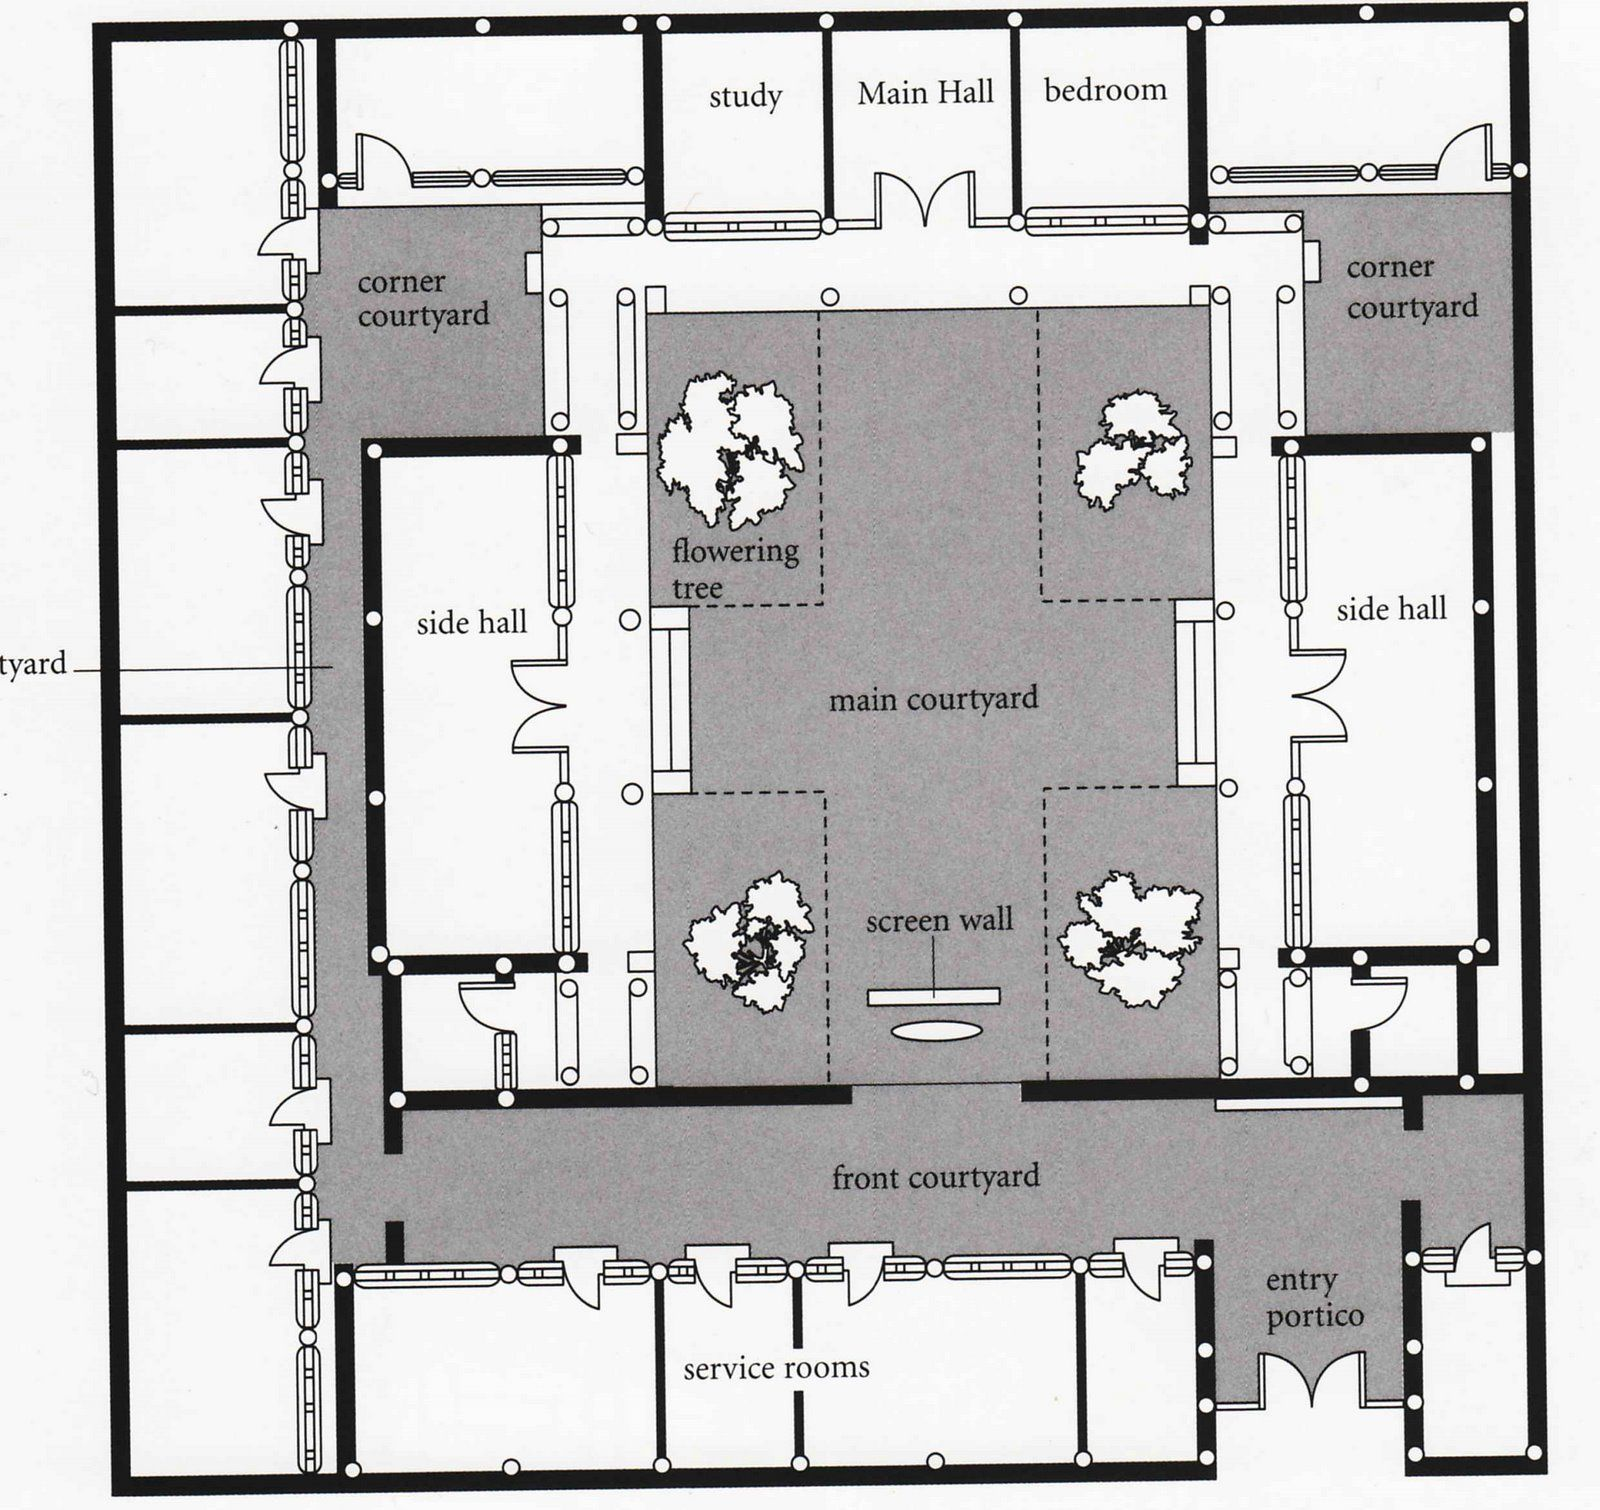 Courtyard Mei Lanfang Jpg Image Courtyard House Plans Chinese Courtyard Traditional Japanese House